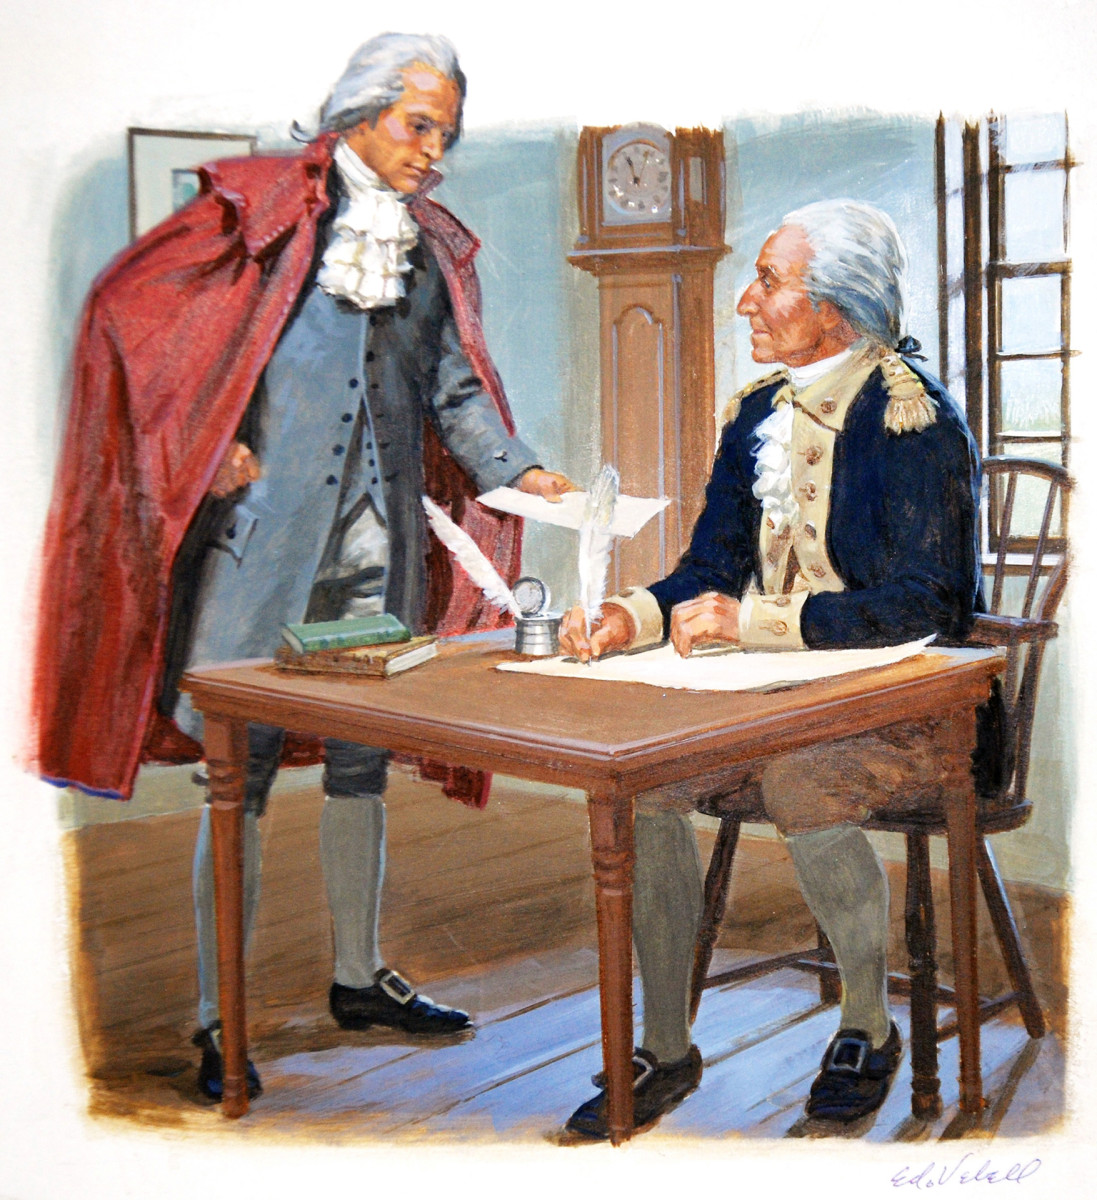 Alexander Hamilton and George Washington